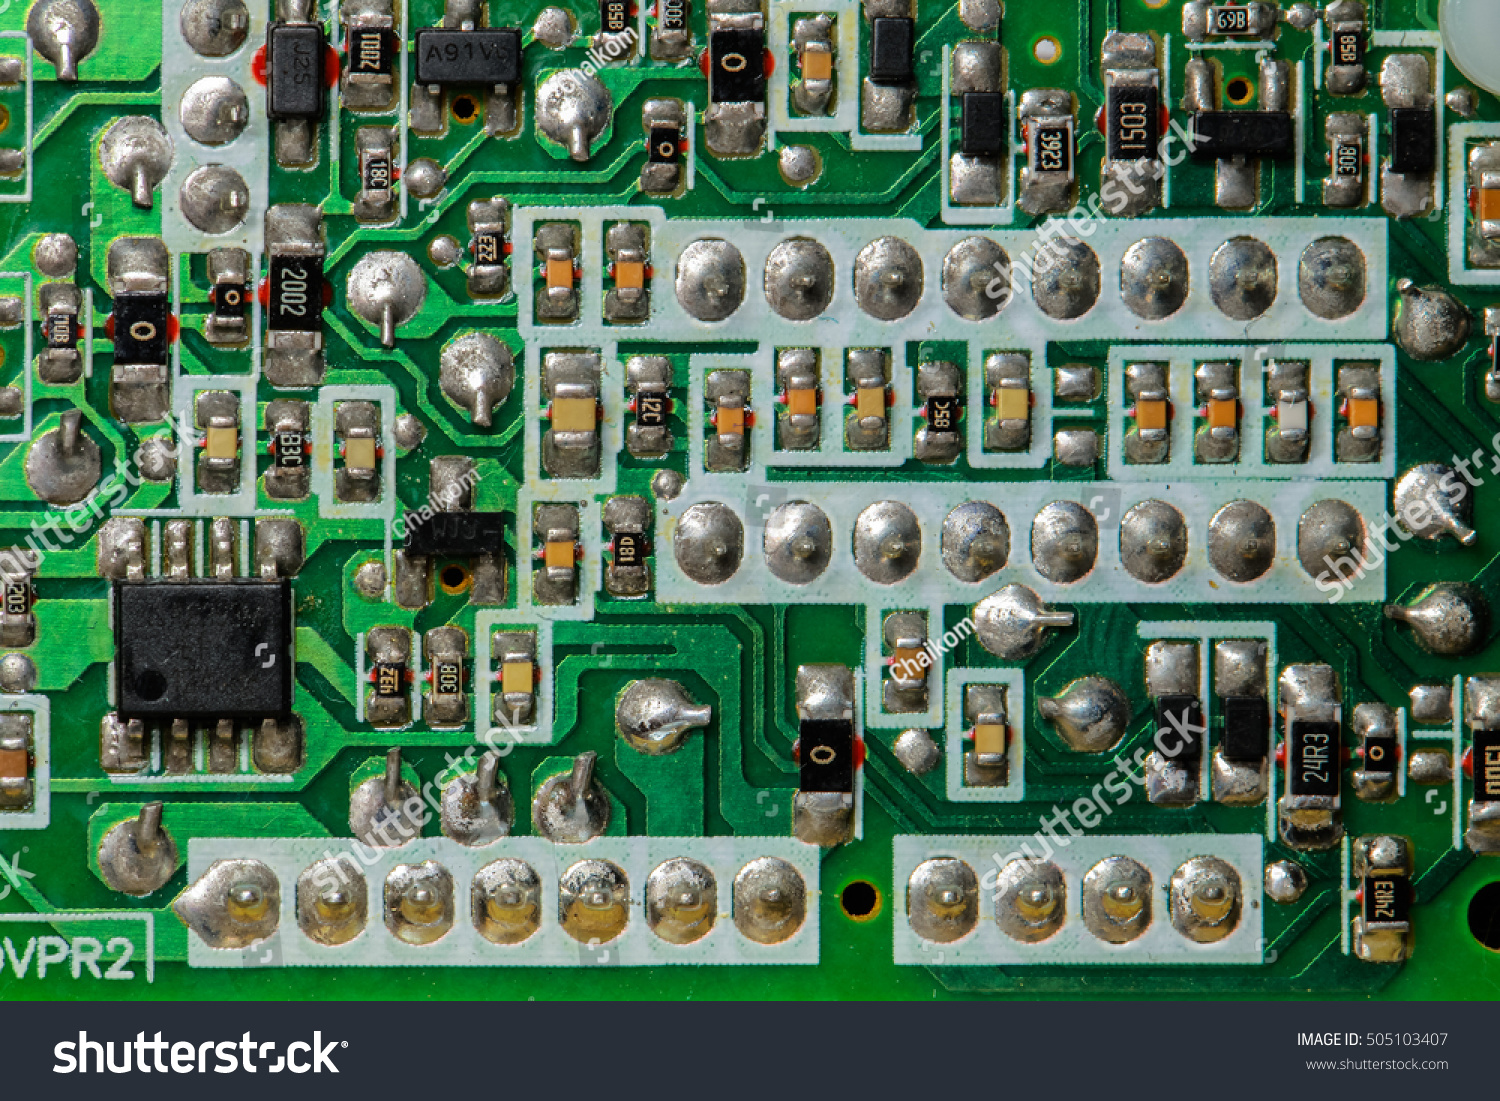 Closeup Electronic Circuit Board Processor Background Stock Photo Games Close Up Of With